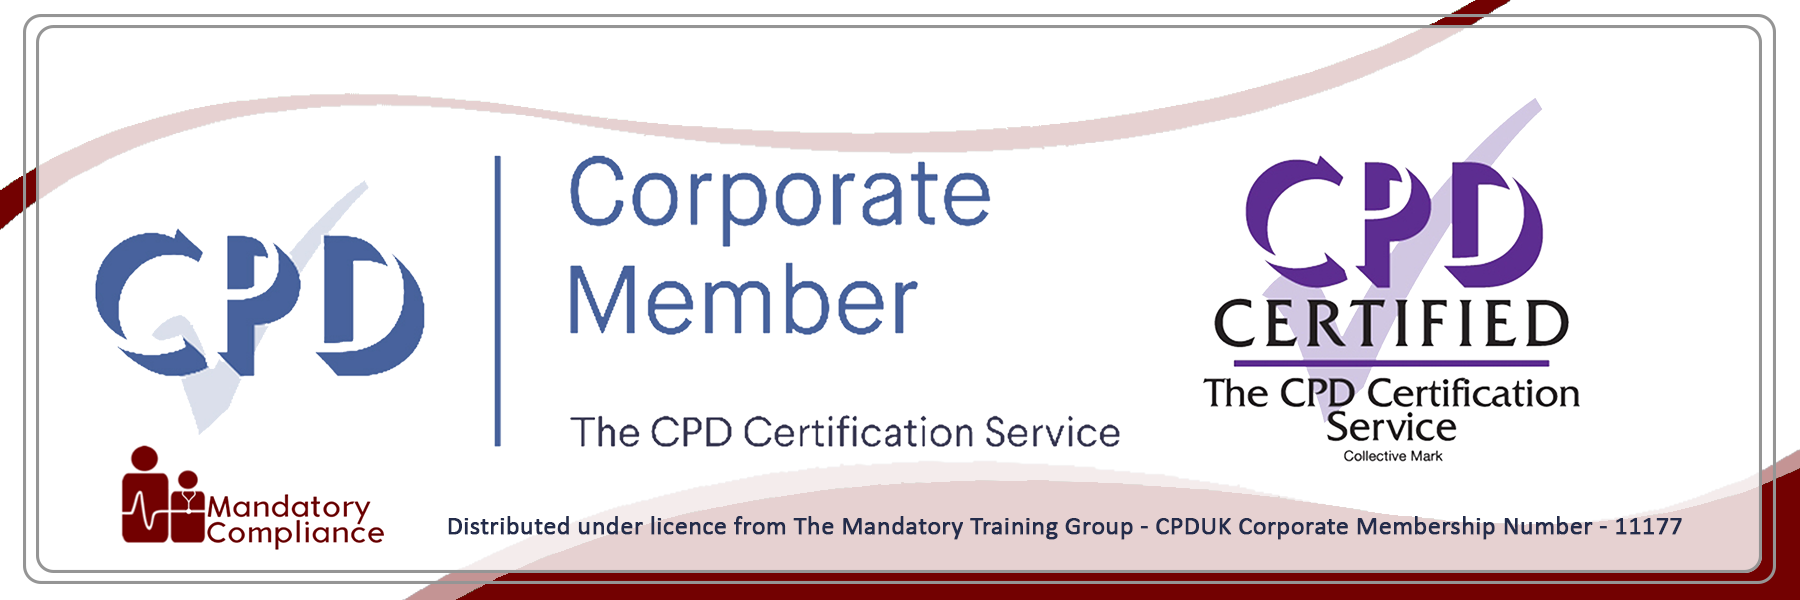 Handling a Difficult Customer - Online Training Course - CPDUK Accredited - Mandatory Compliance UK -